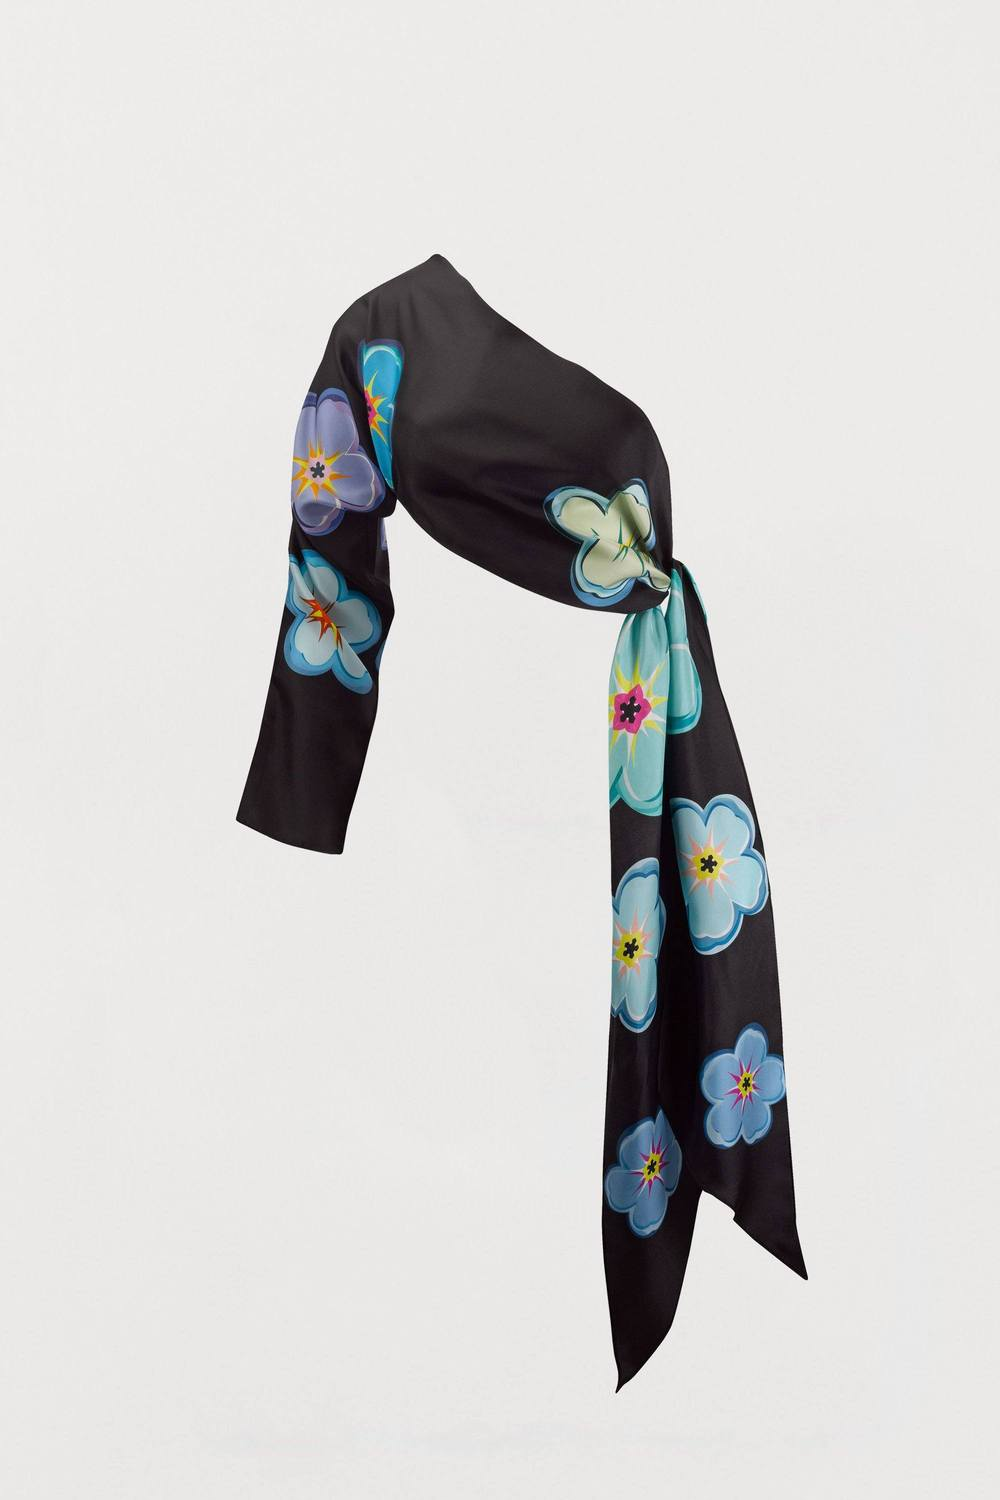 Forget-Me-Not Floral Silk Sleeved Scarf - Bianca Elgar